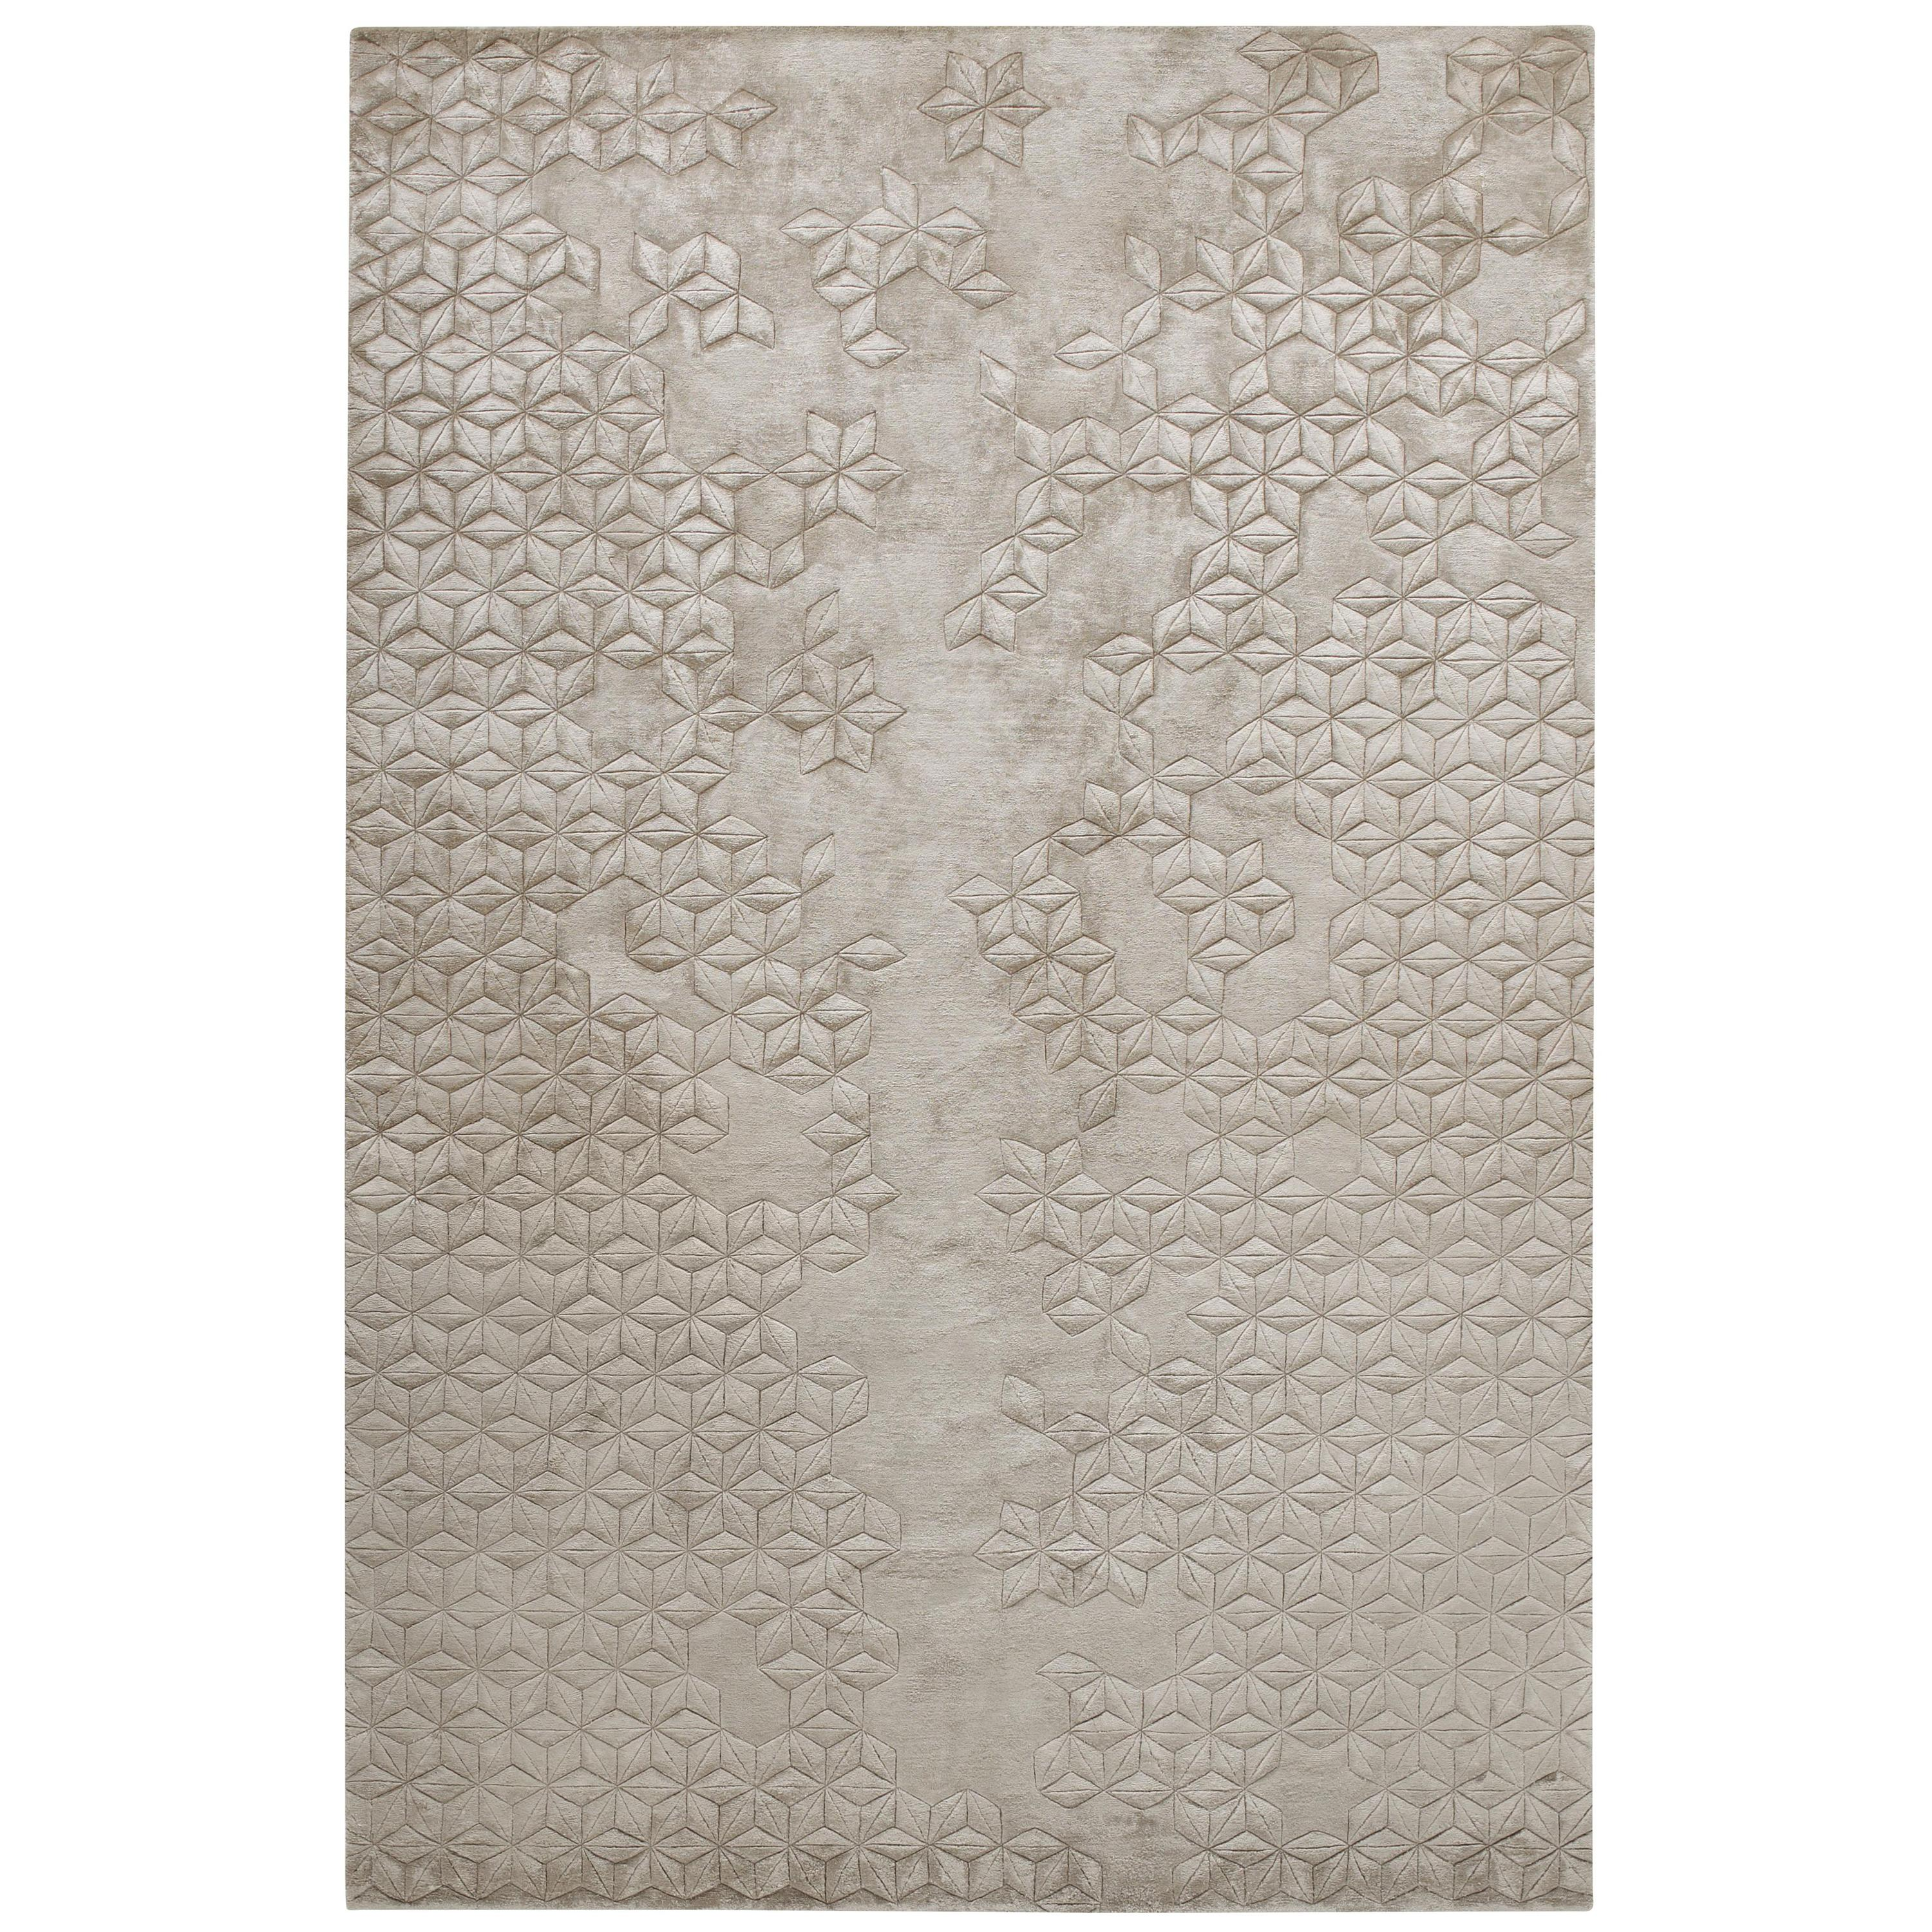 Star Silk Hand-Knotted 10x8 Rug in Silk by Helen Amy Murray